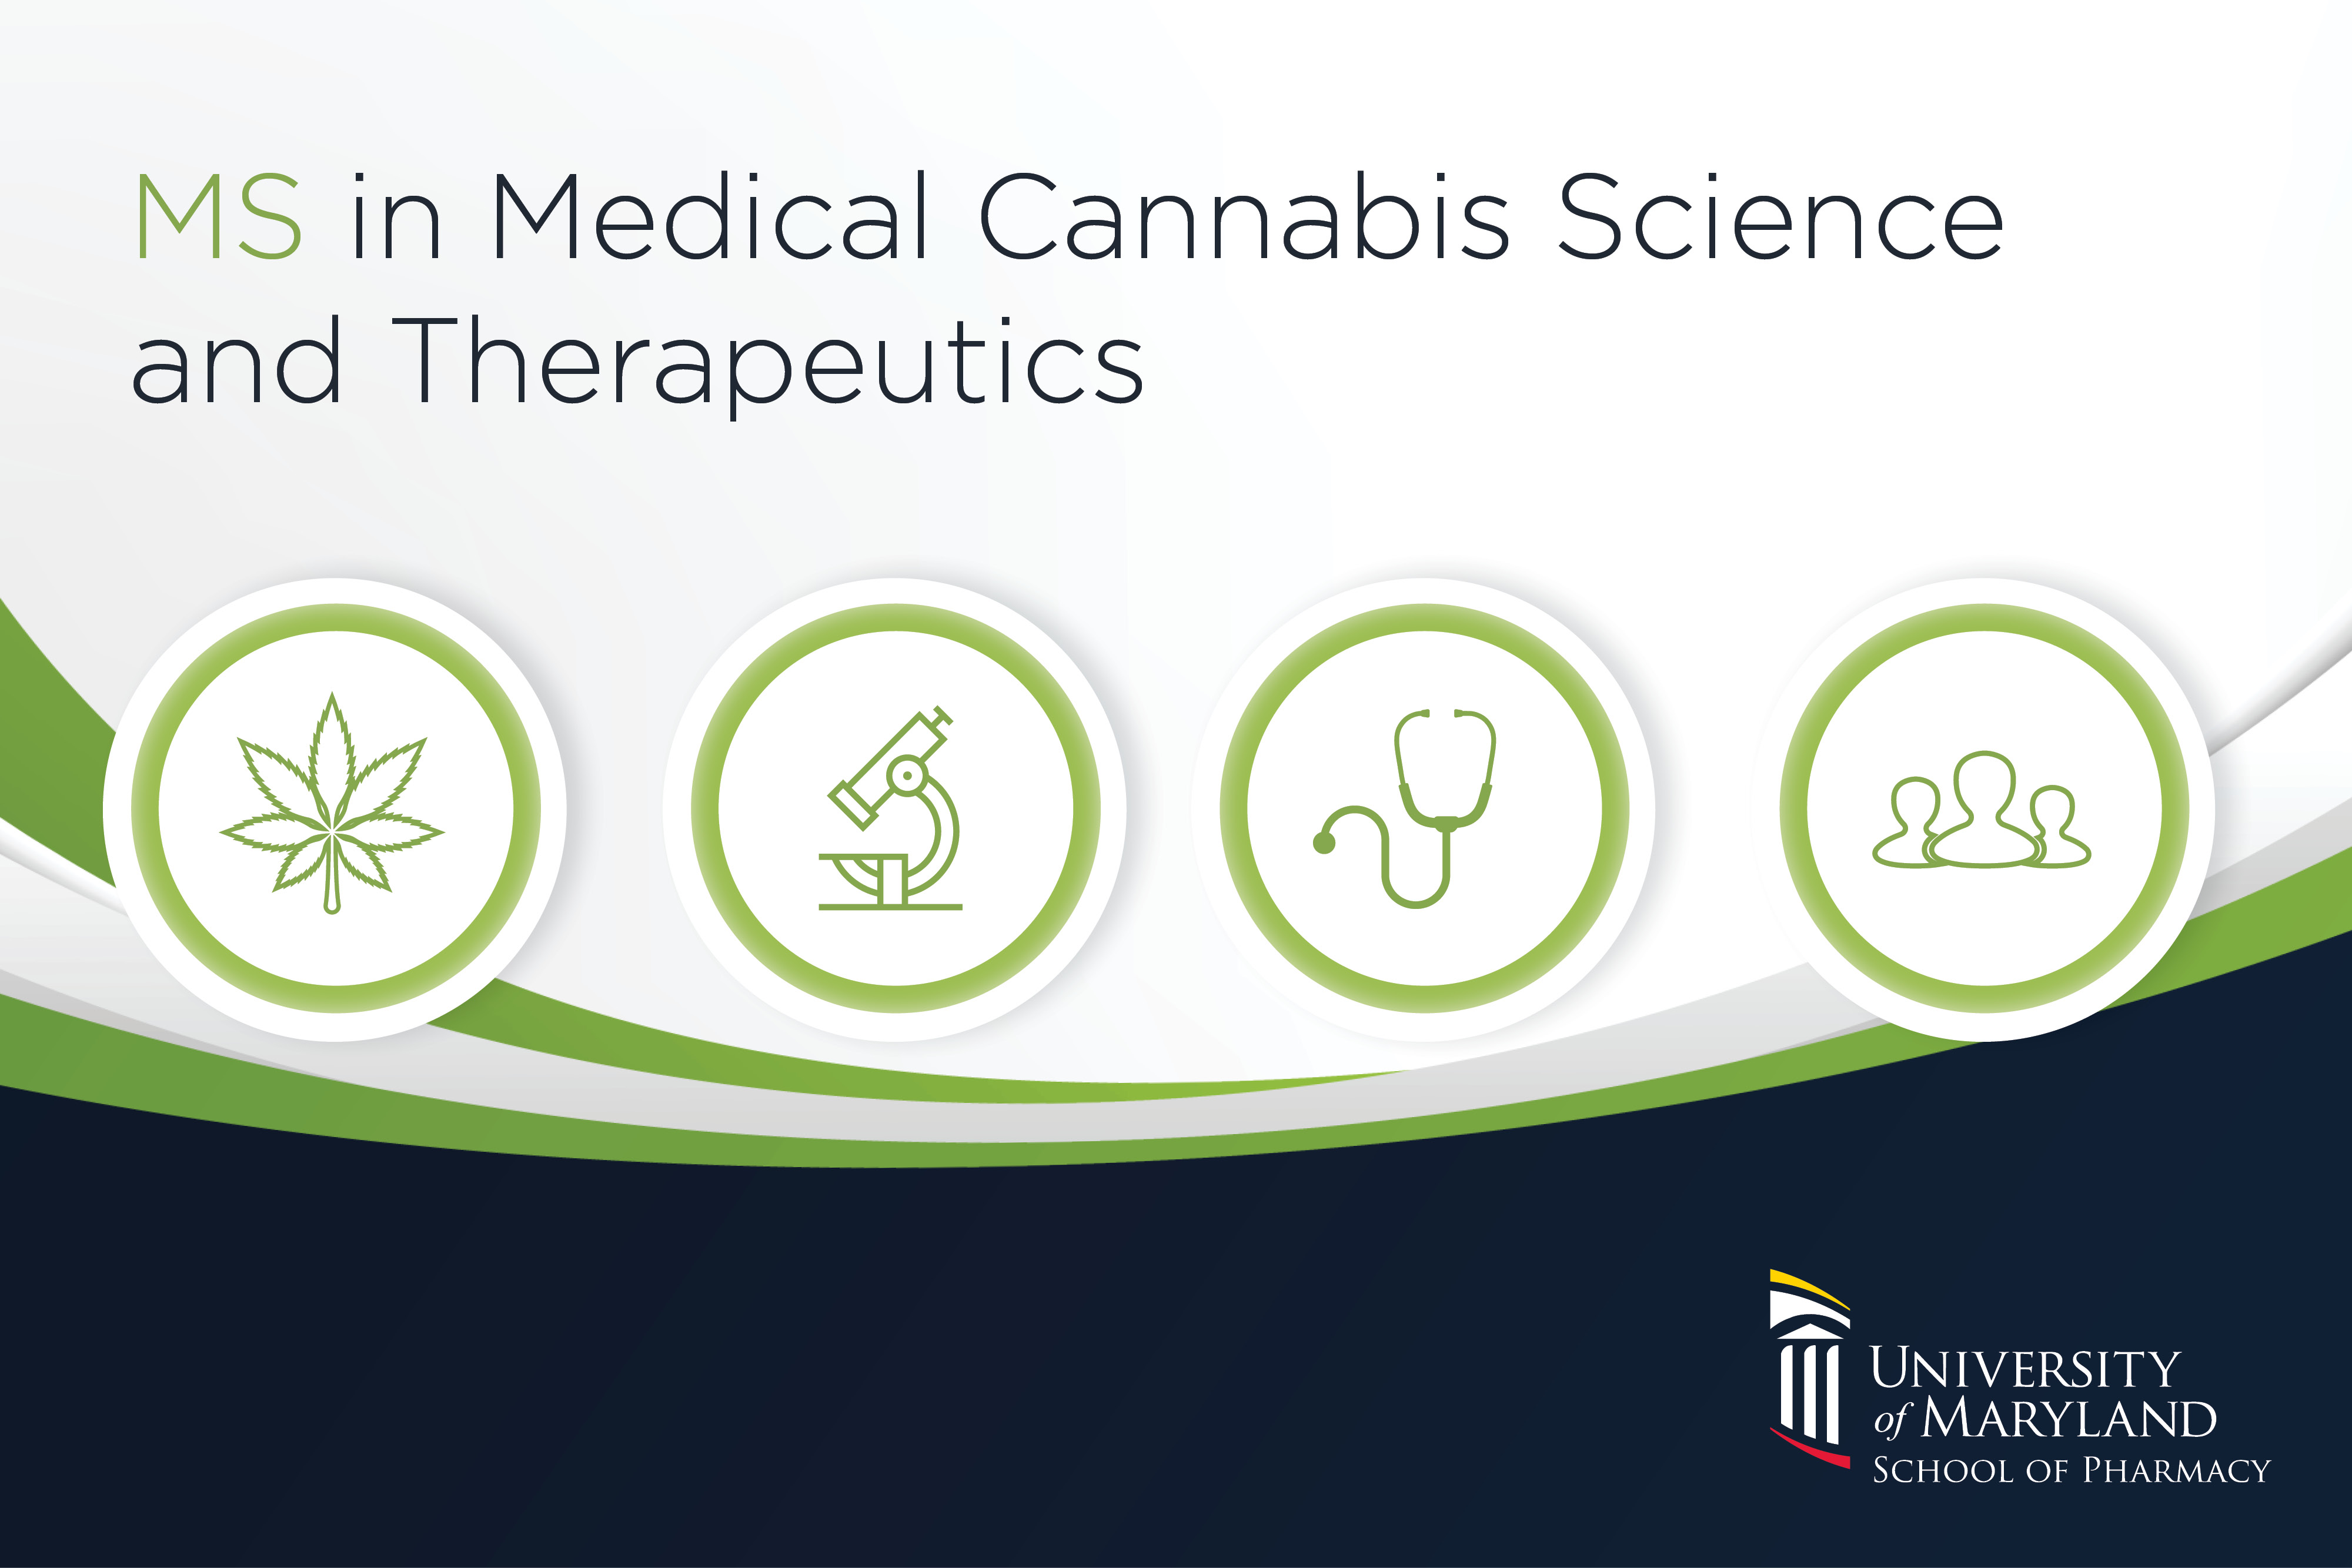 MS in Medical Cannabis Science and Therapeutics Virtual Open House